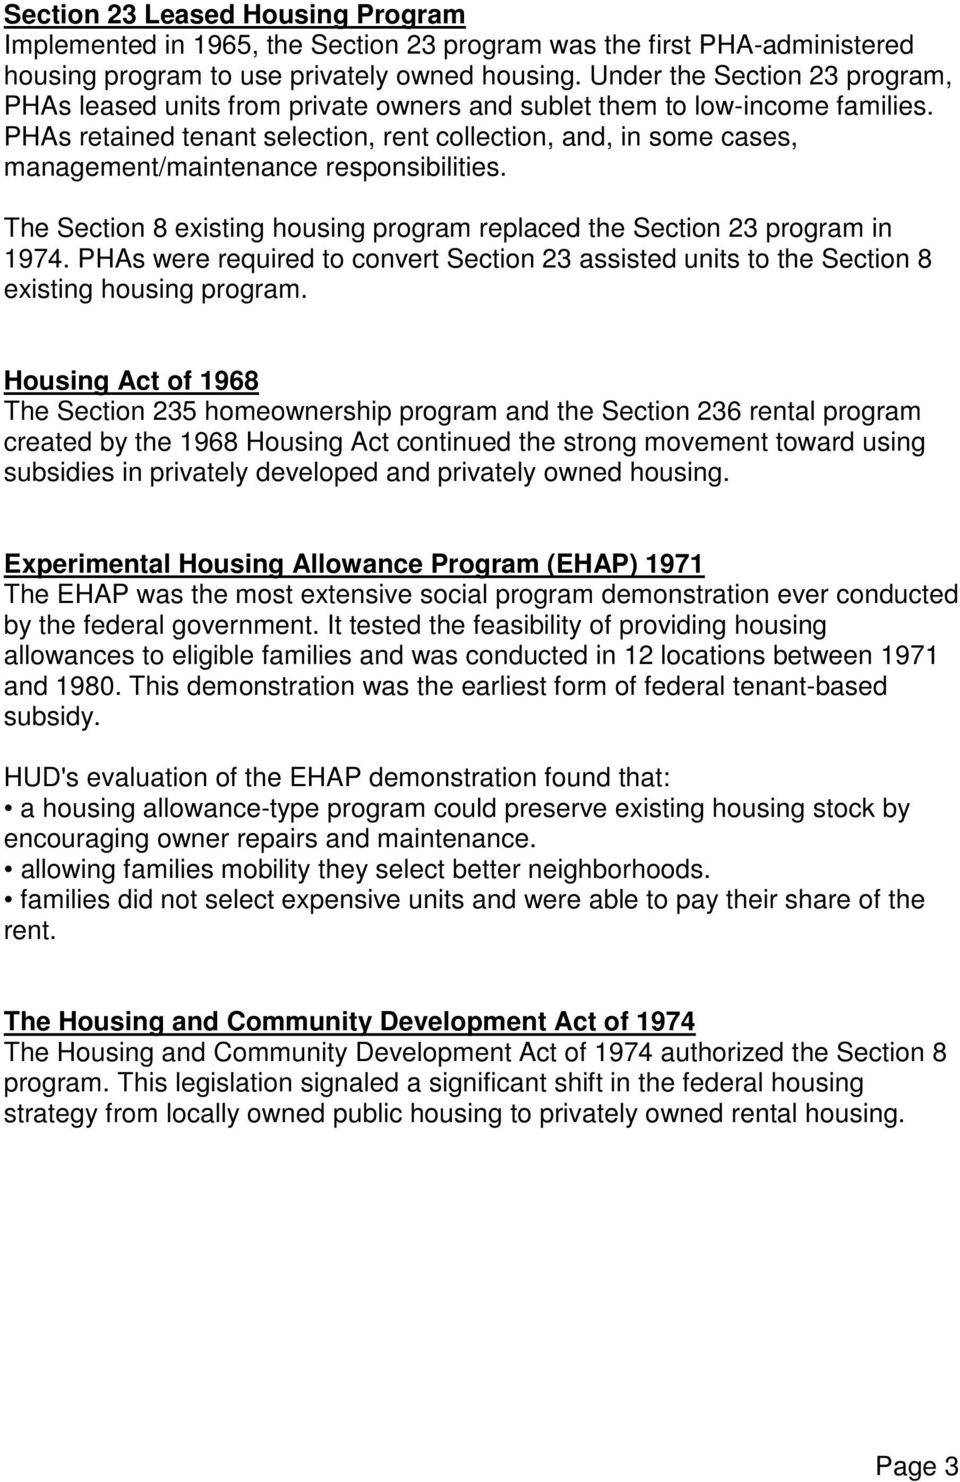 PHAs retained tenant selection, rent collection, and, in some cases, management/maintenance responsibilities. The Section 8 existing housing program replaced the Section 23 program in 1974.